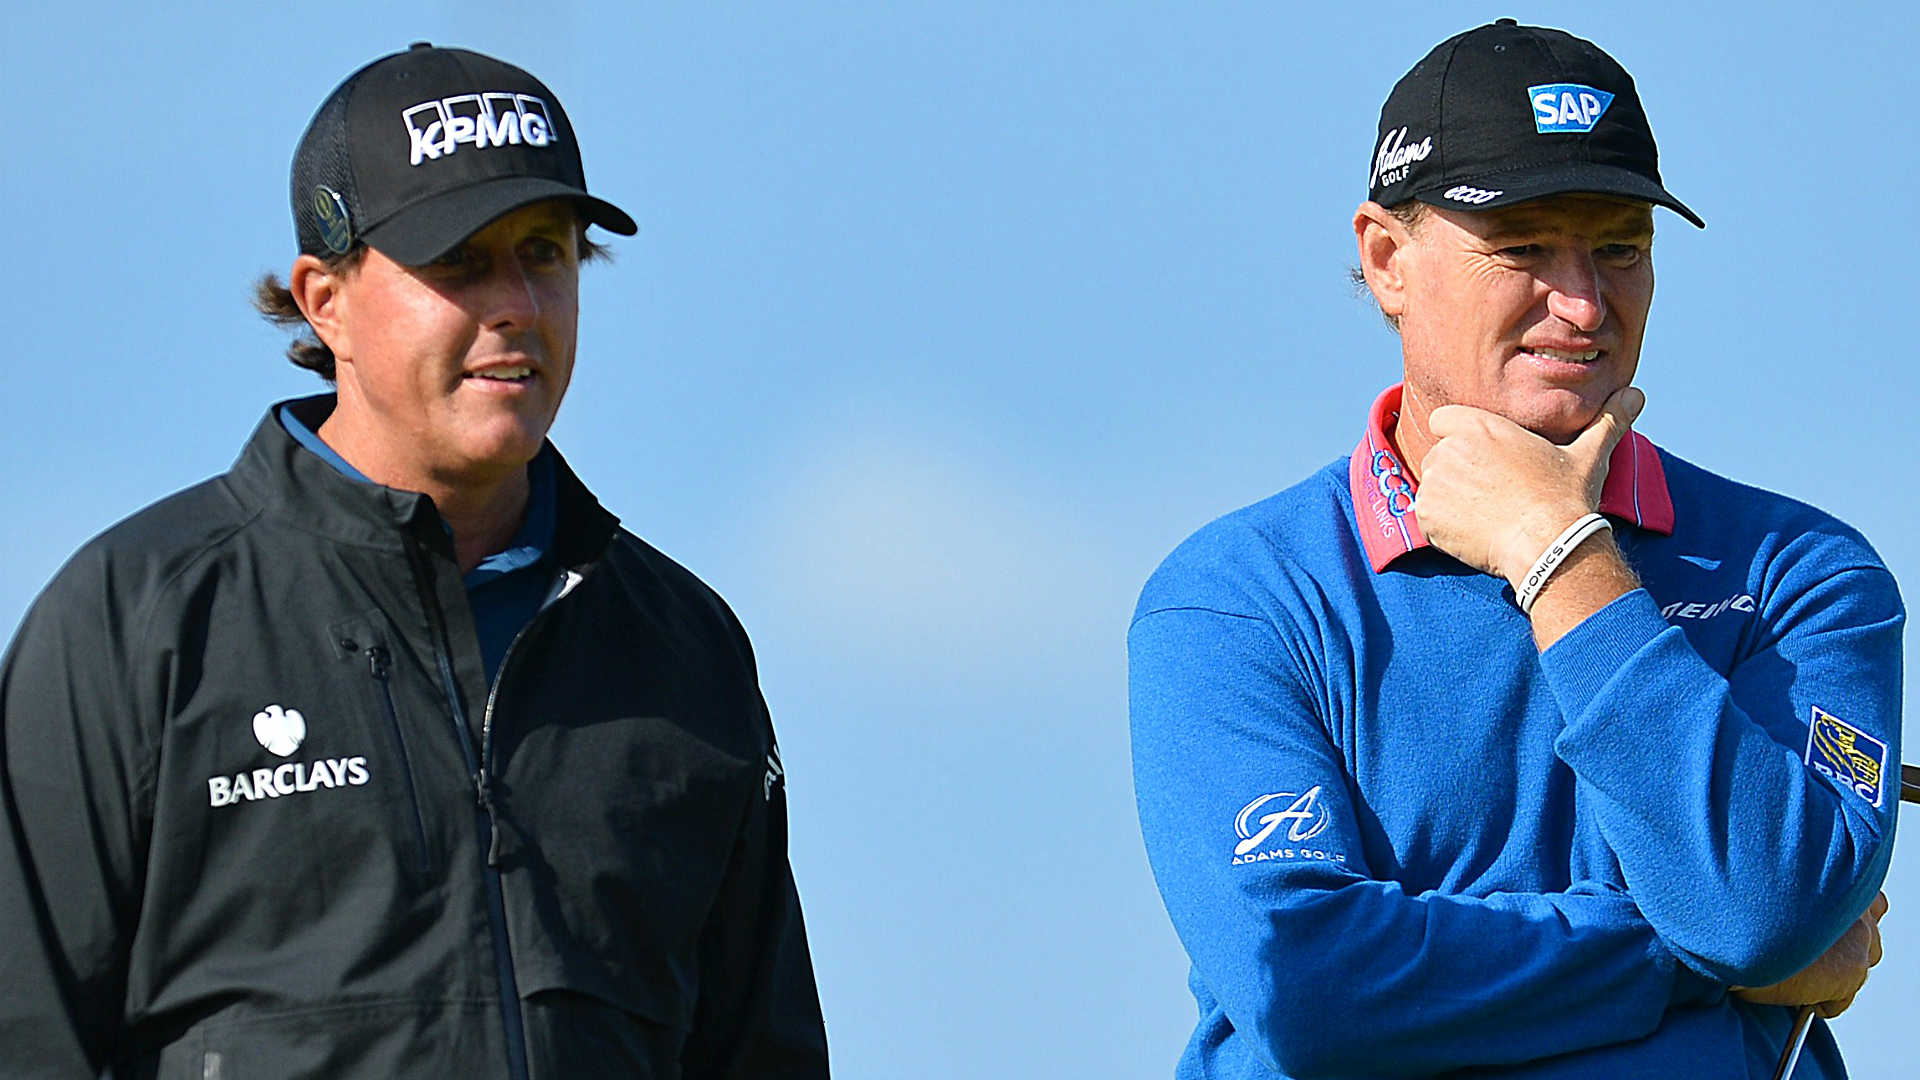 Phil Mickelson and Ernie Els hit major century milestone at PGA Championship